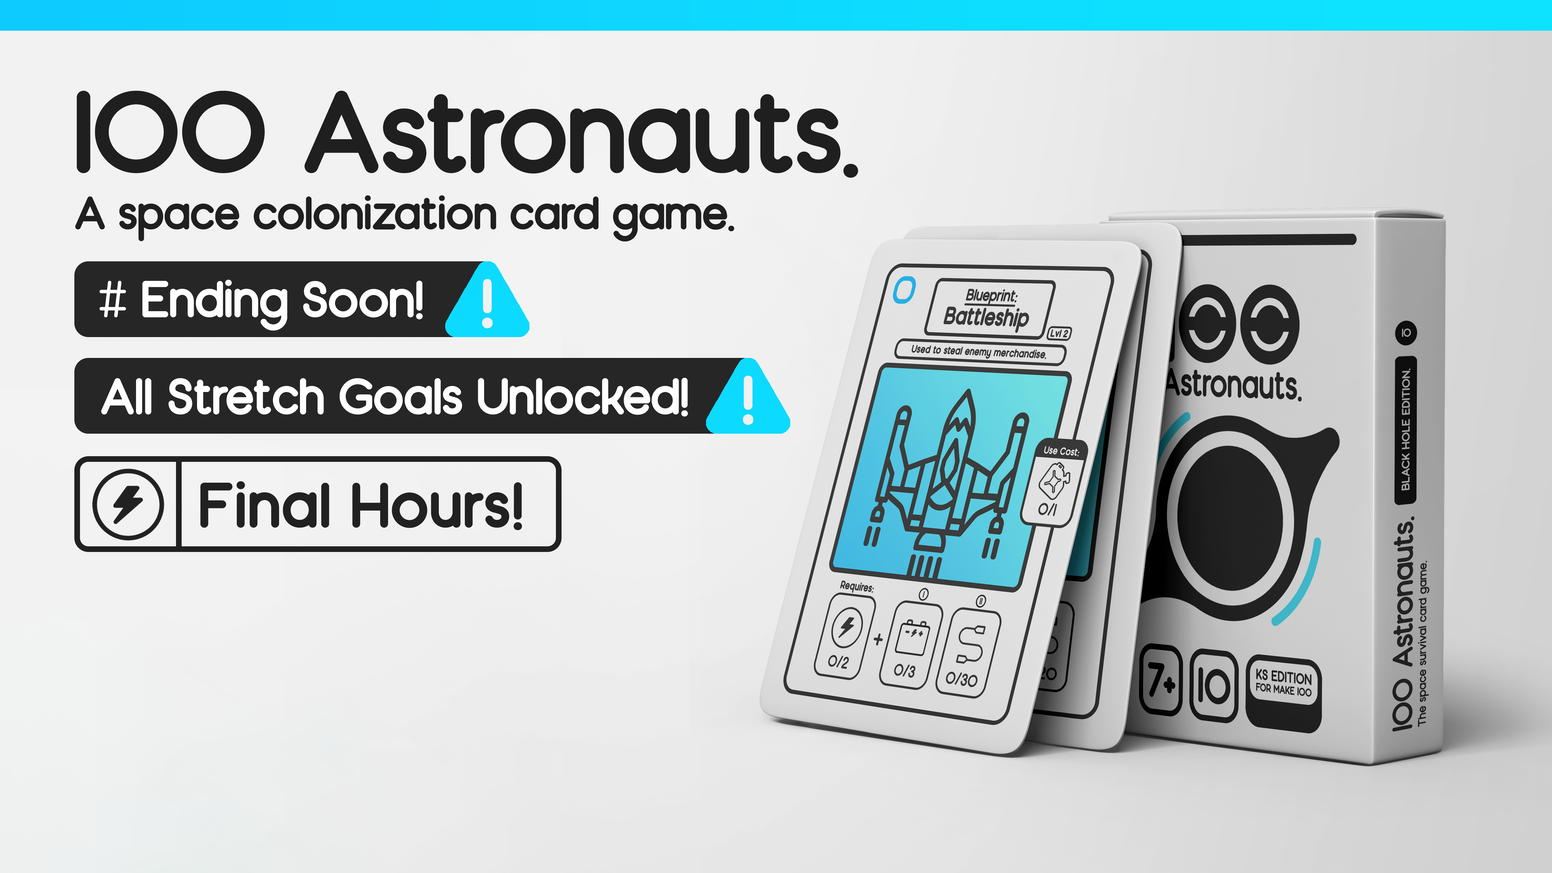 A beautifully designed space colonization card game.